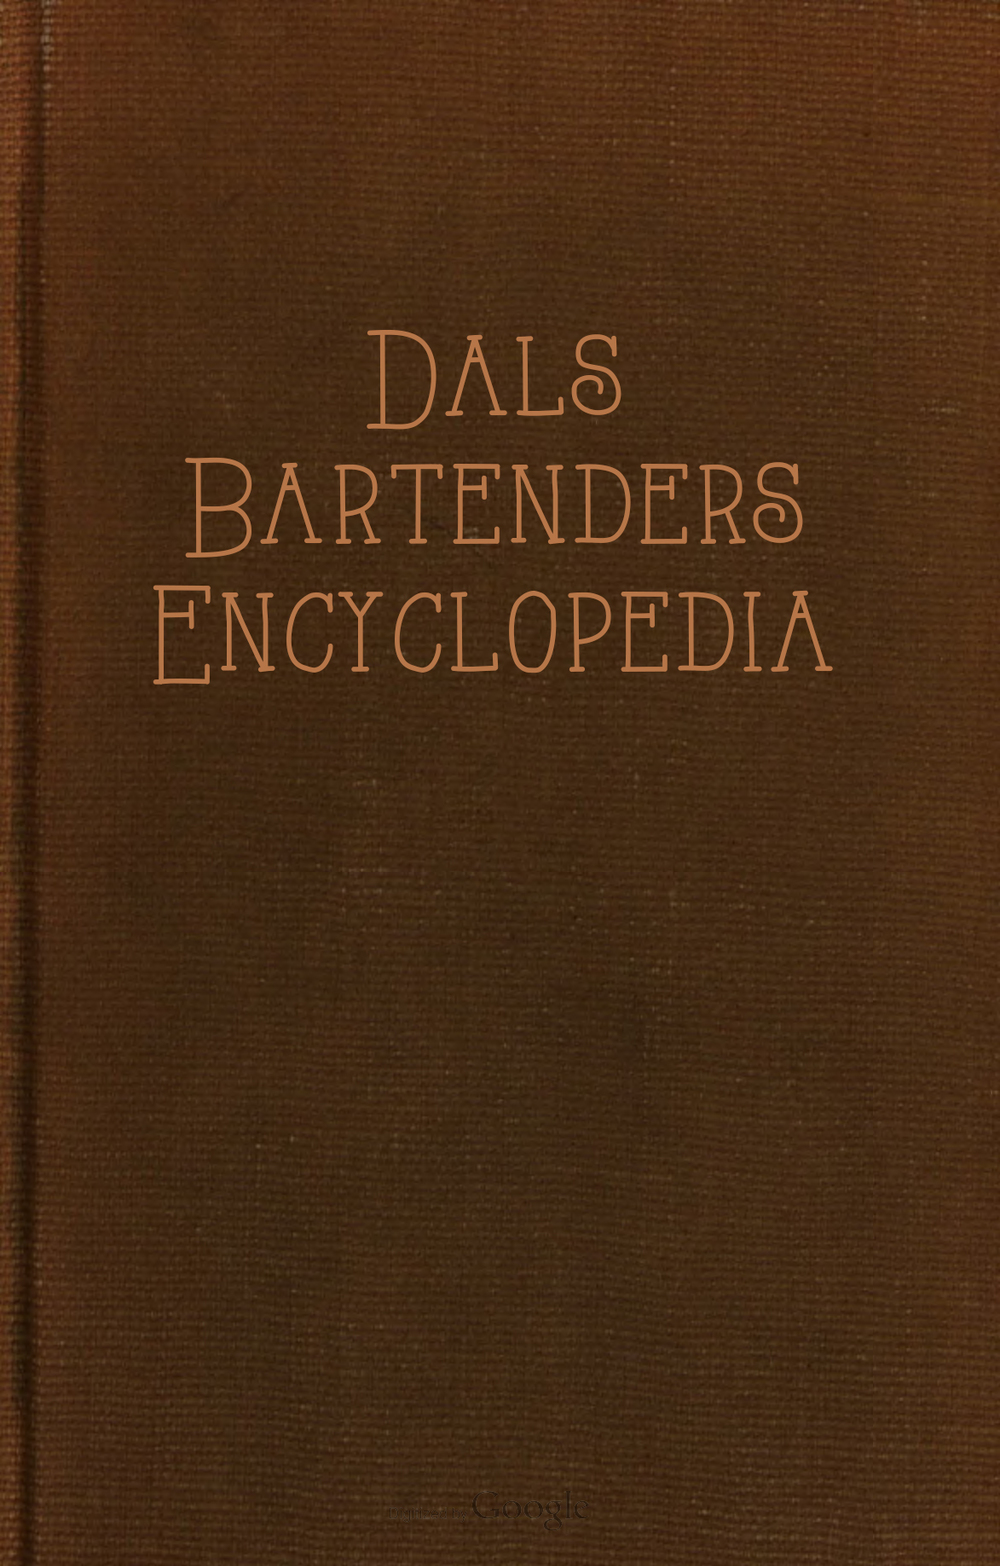 Daly_s_Bartenders_Encyclopedia-2.jpg